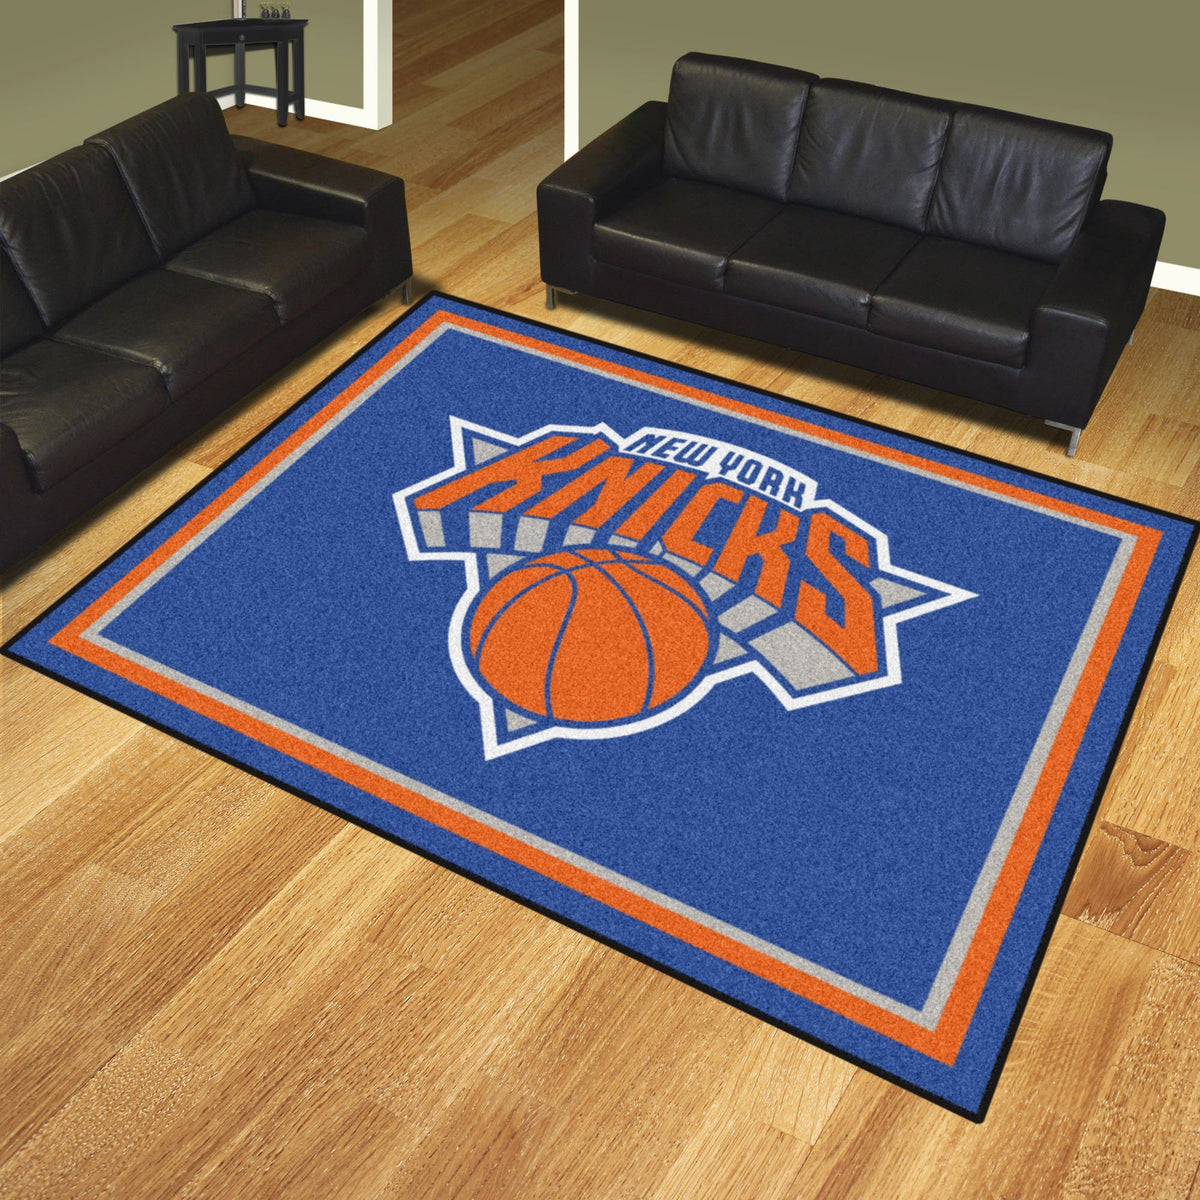 NBA - 8' x 10' Rug NBA Mats, Plush Rugs, 8x10 Rug, NBA, Home Fan Mats New York Knicks